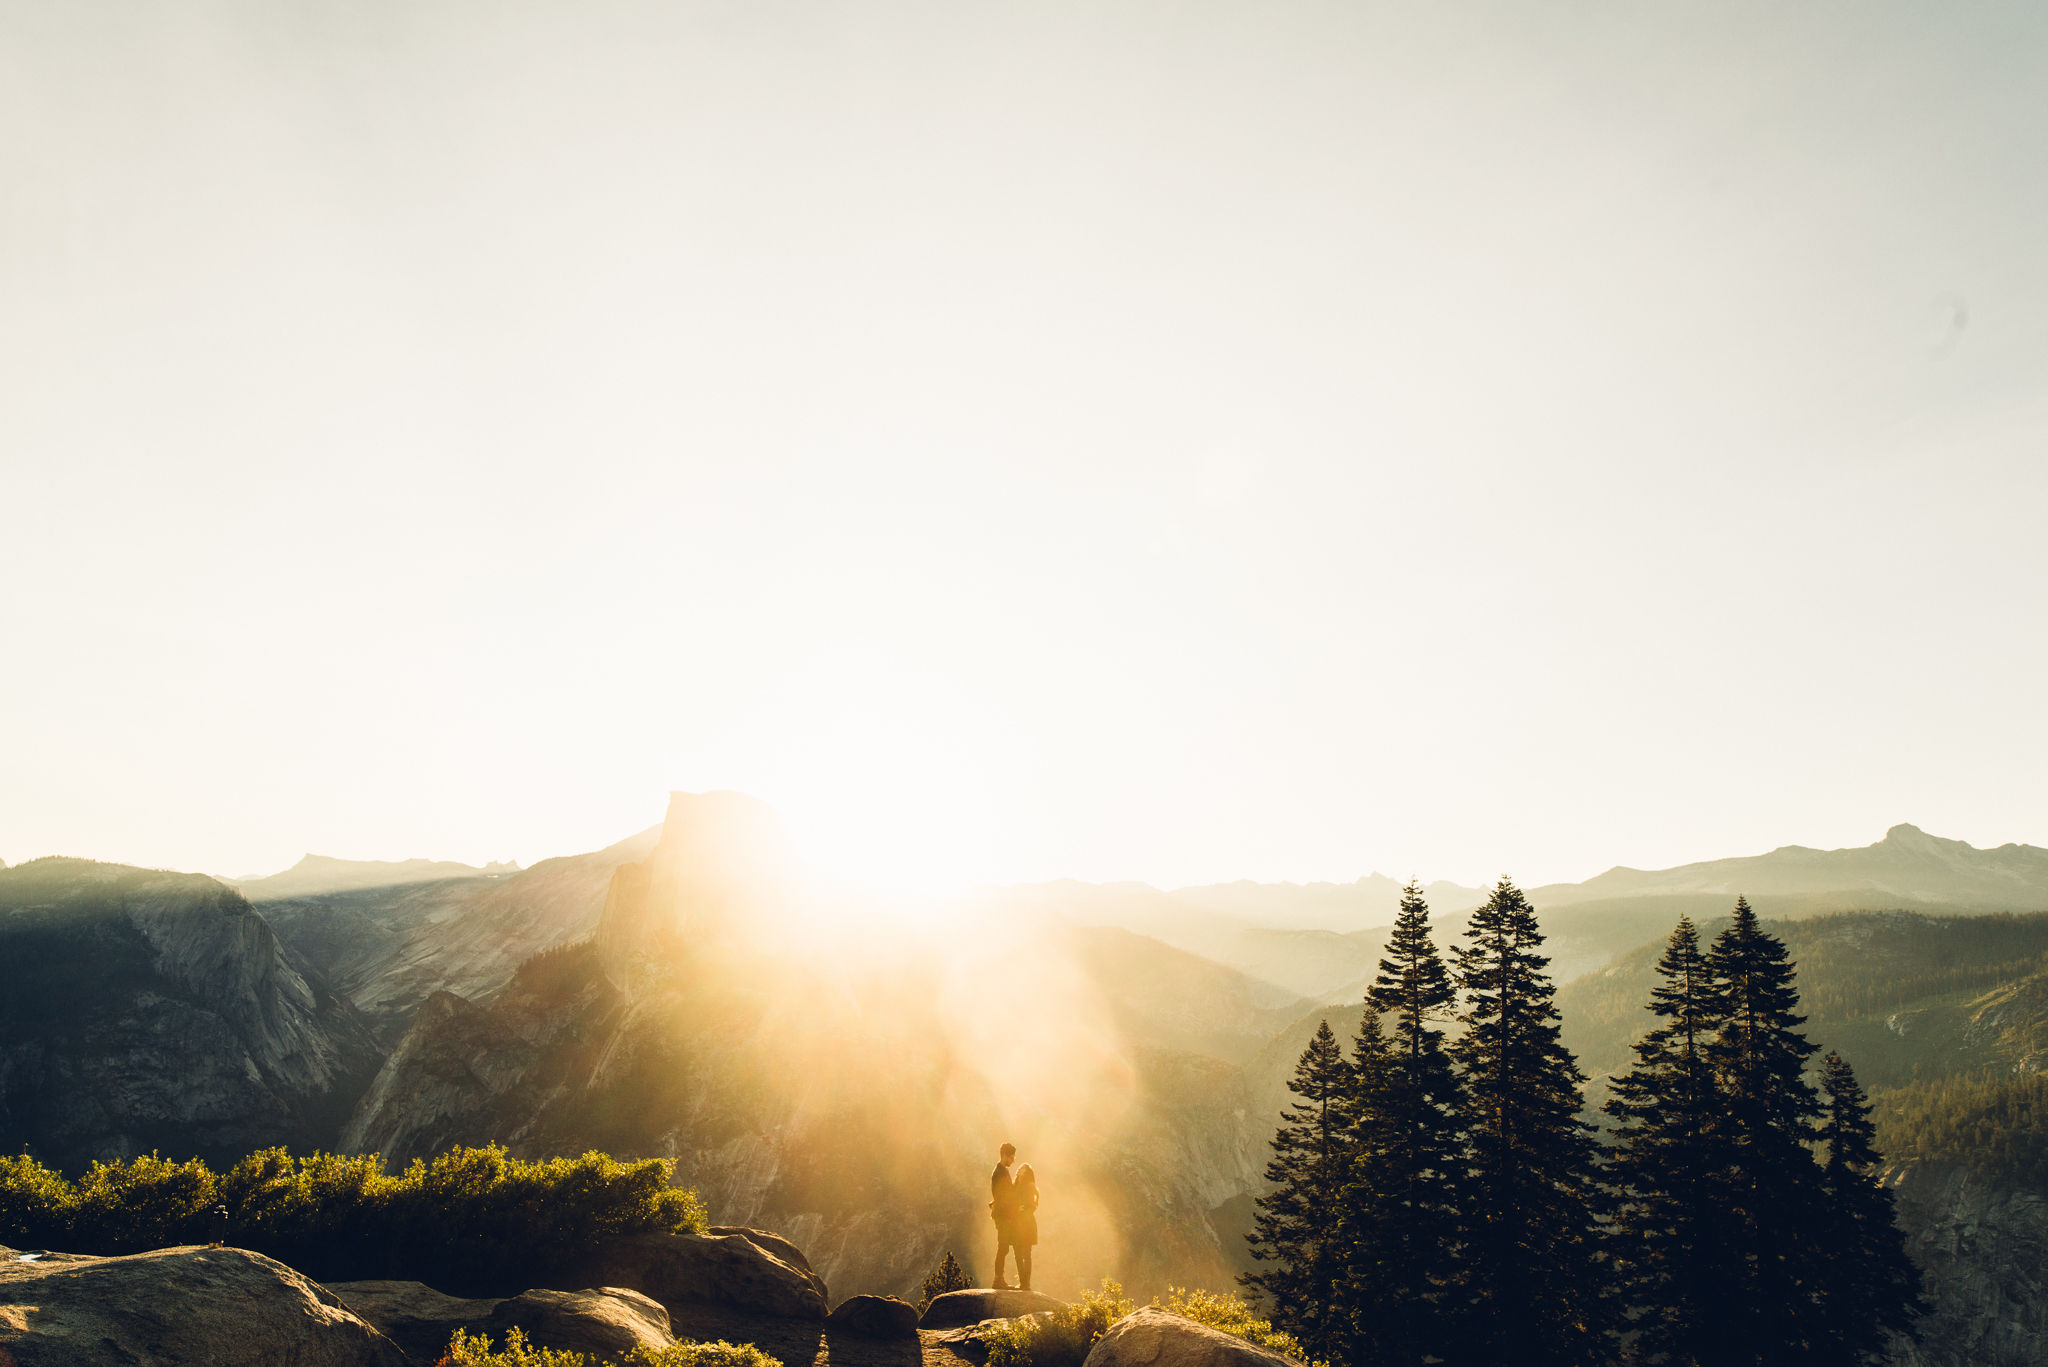 ©Isaiah & Taylor Photography - Los Angeles Destination Wedding Photographer - Yosemite National Park Hiking Adventure Engagement - Glacier Point Sunrise-023.jpg